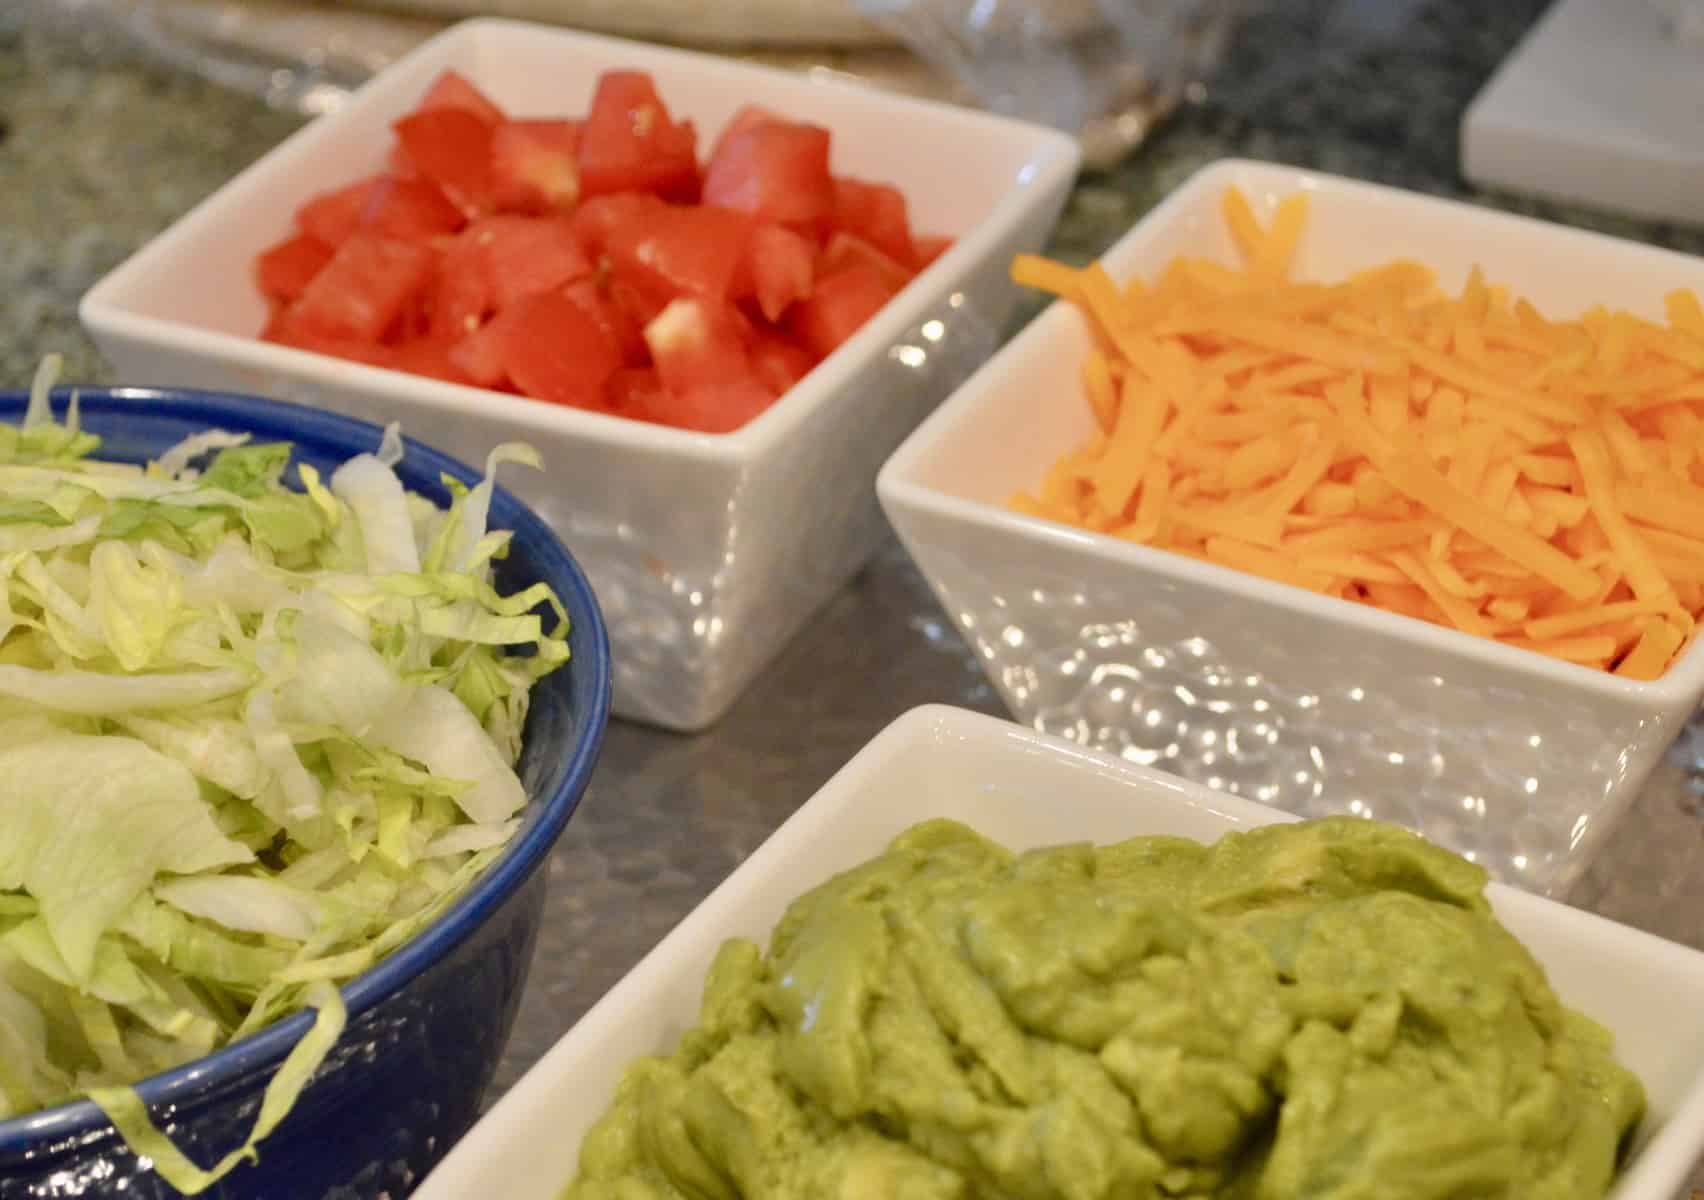 toppings for cream cheese chicken enchiladas include shredded cheese, guacamole, lettuce, tomatoes and sour cream